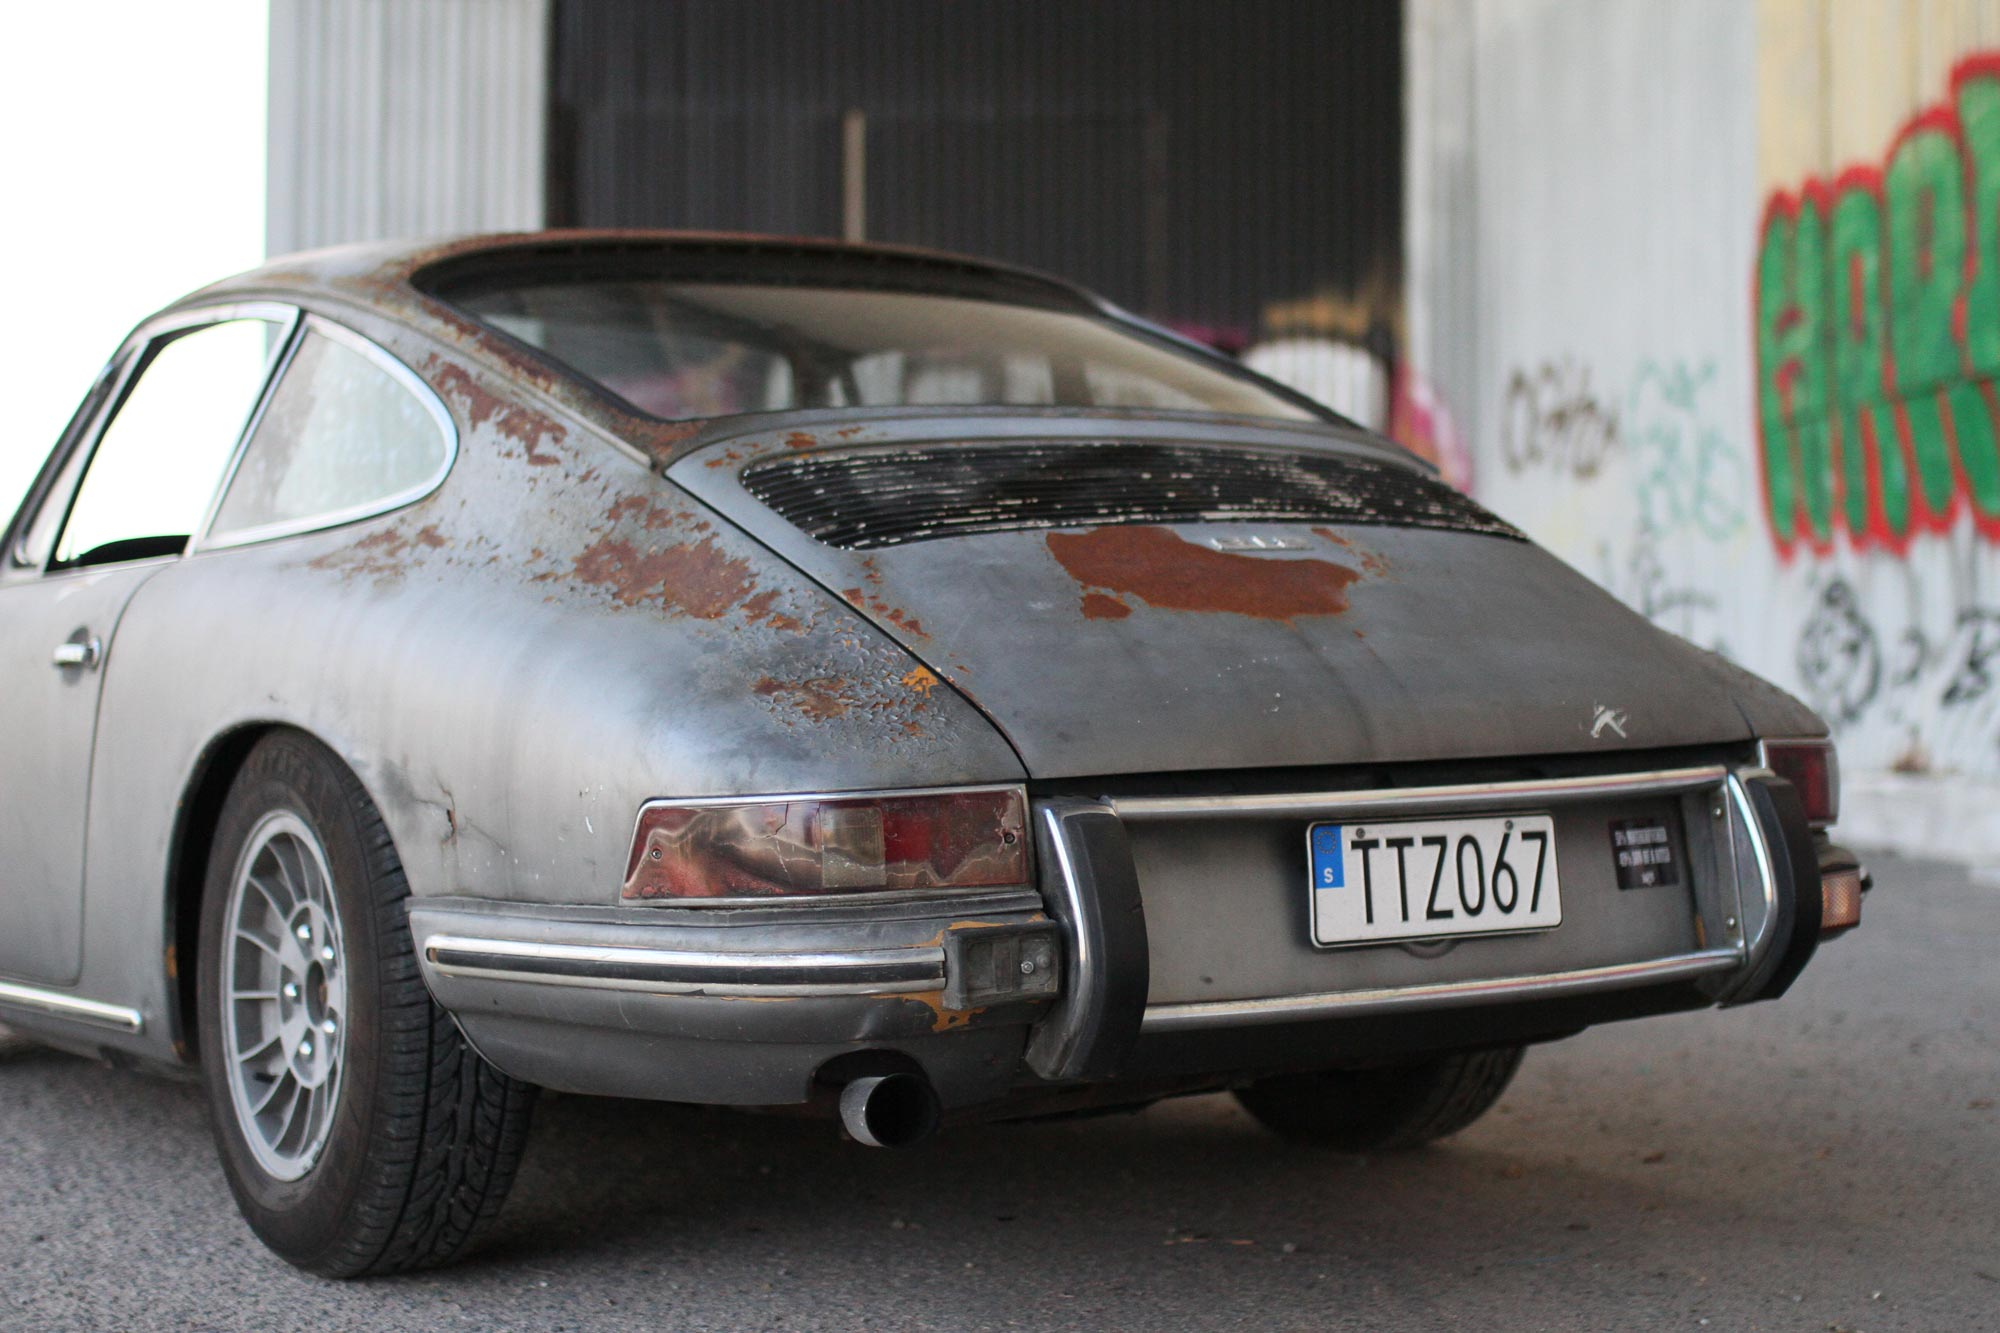 Porsche 912 with a patina touch, direct from San Fransisco.